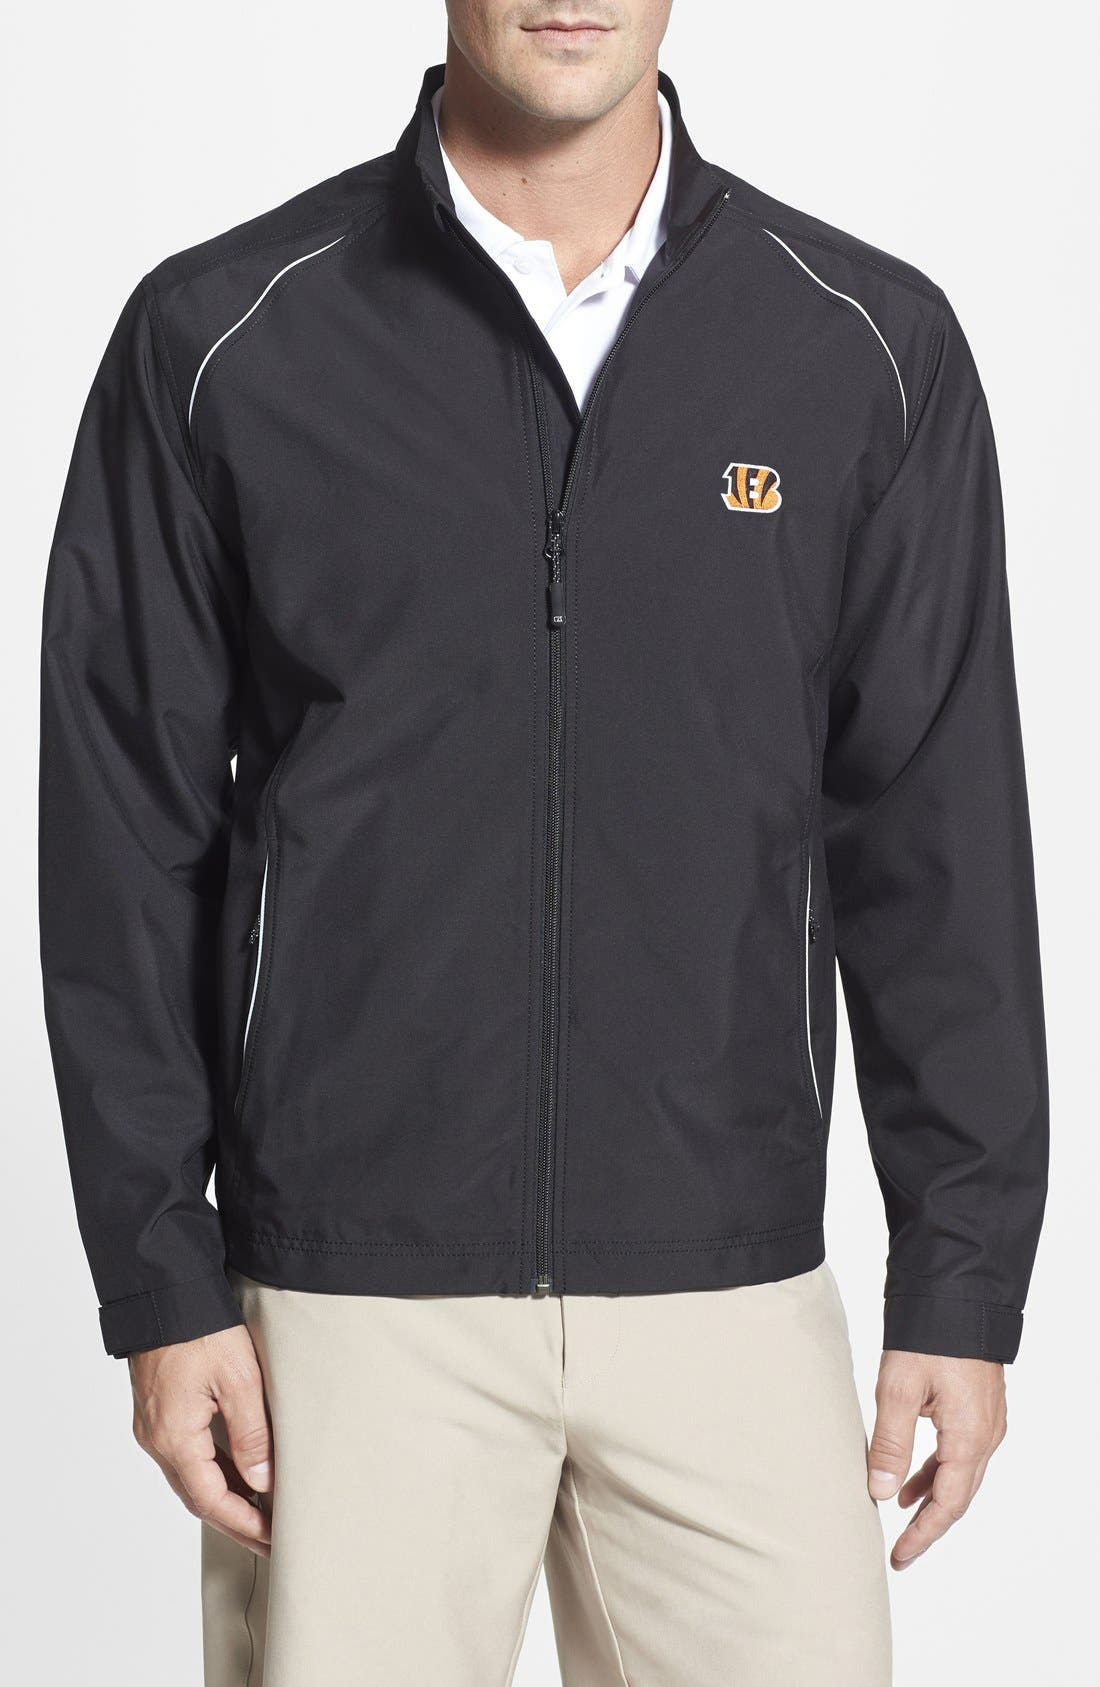 Alternate Image 1 Selected - Cutter & Buck 'Cincinnati Bengals - Beacon' WeatherTec Wind & Water Resistant Jacket